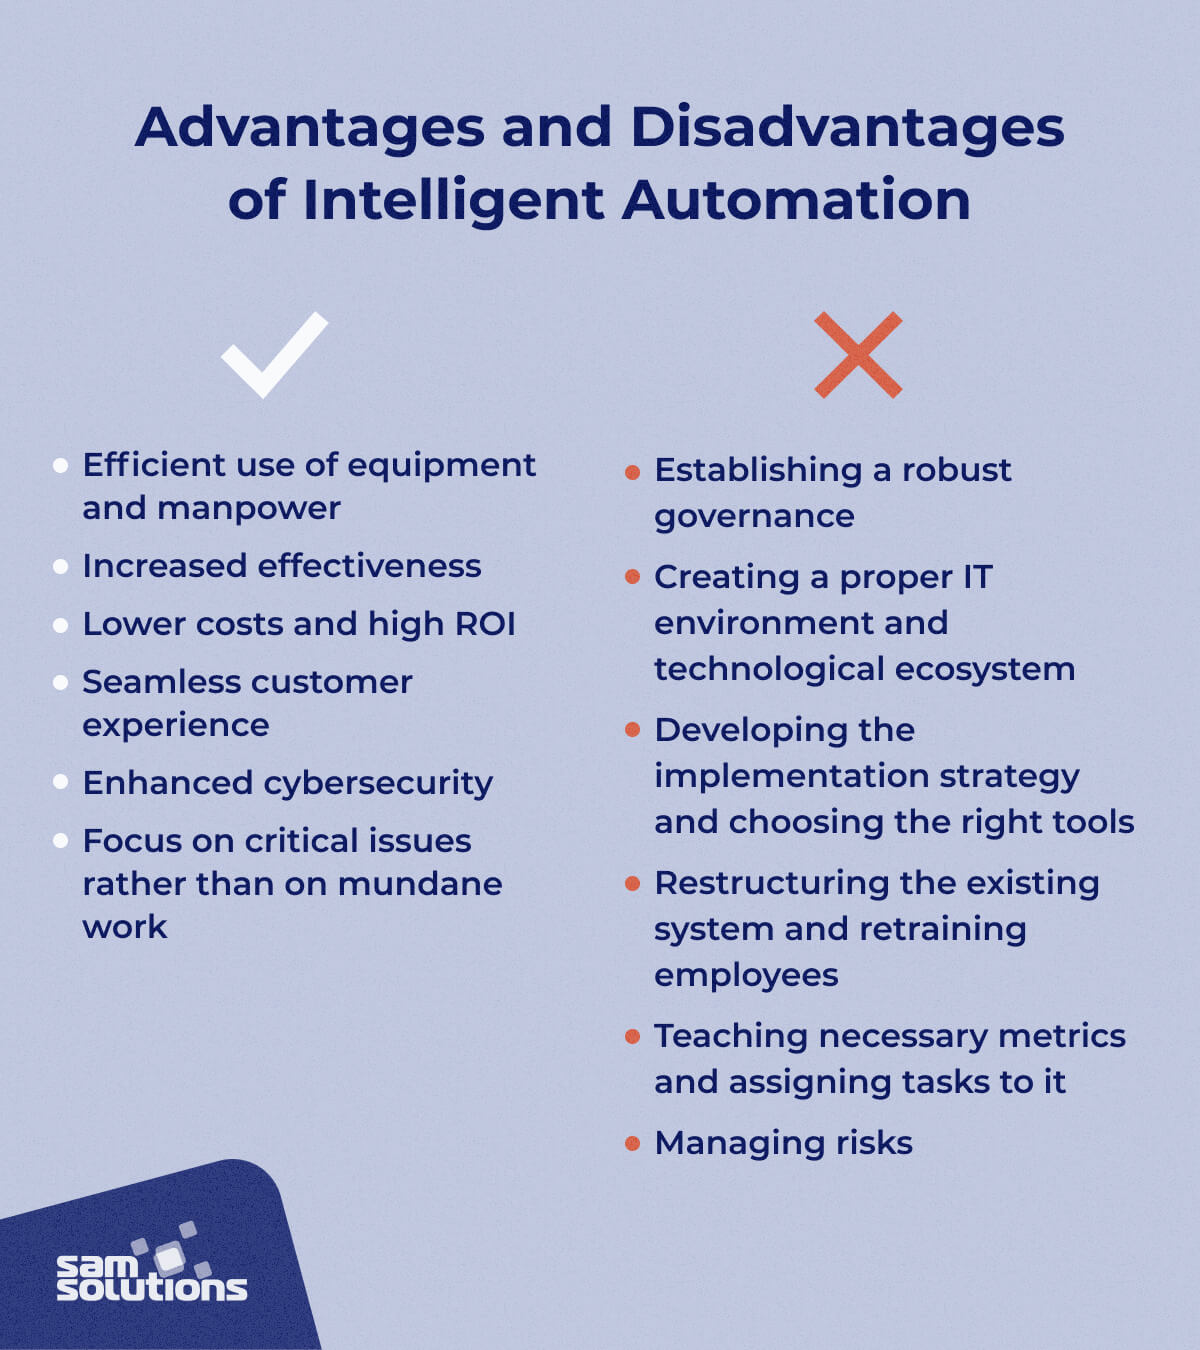 Advantages-Disadvantages-Intelligent-Automation-IA-image